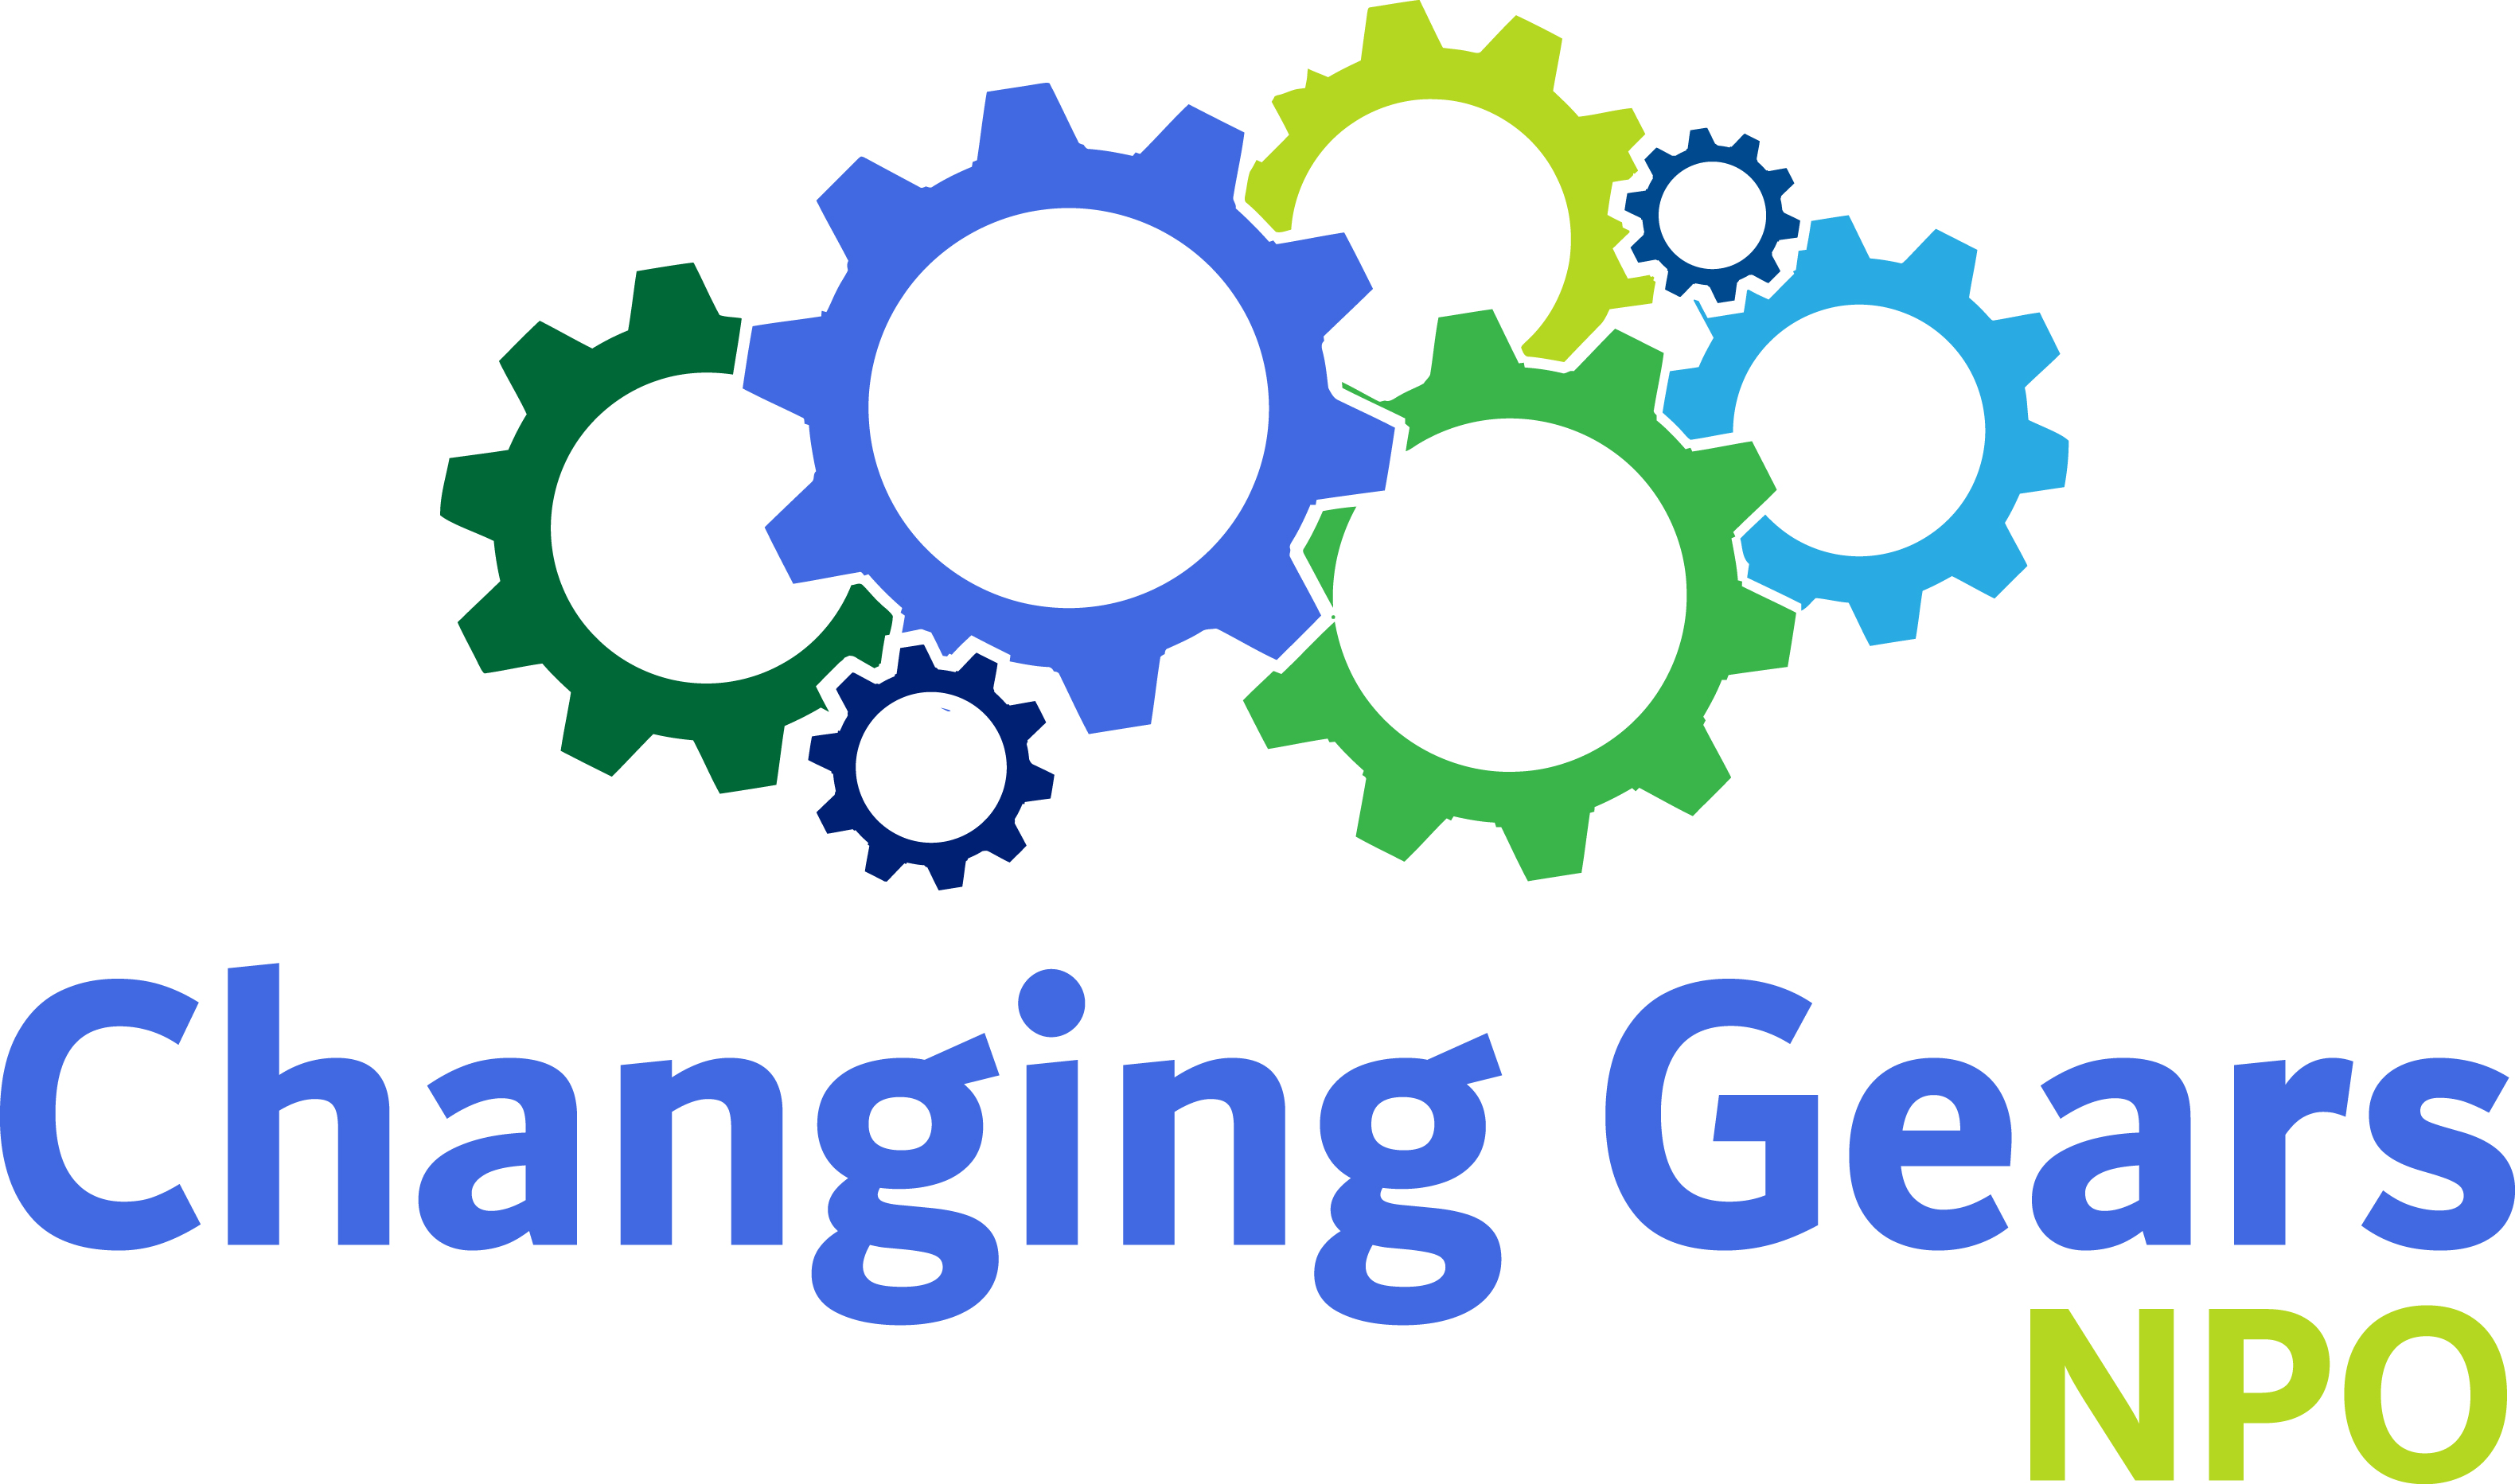 Changing Gears NPO logo